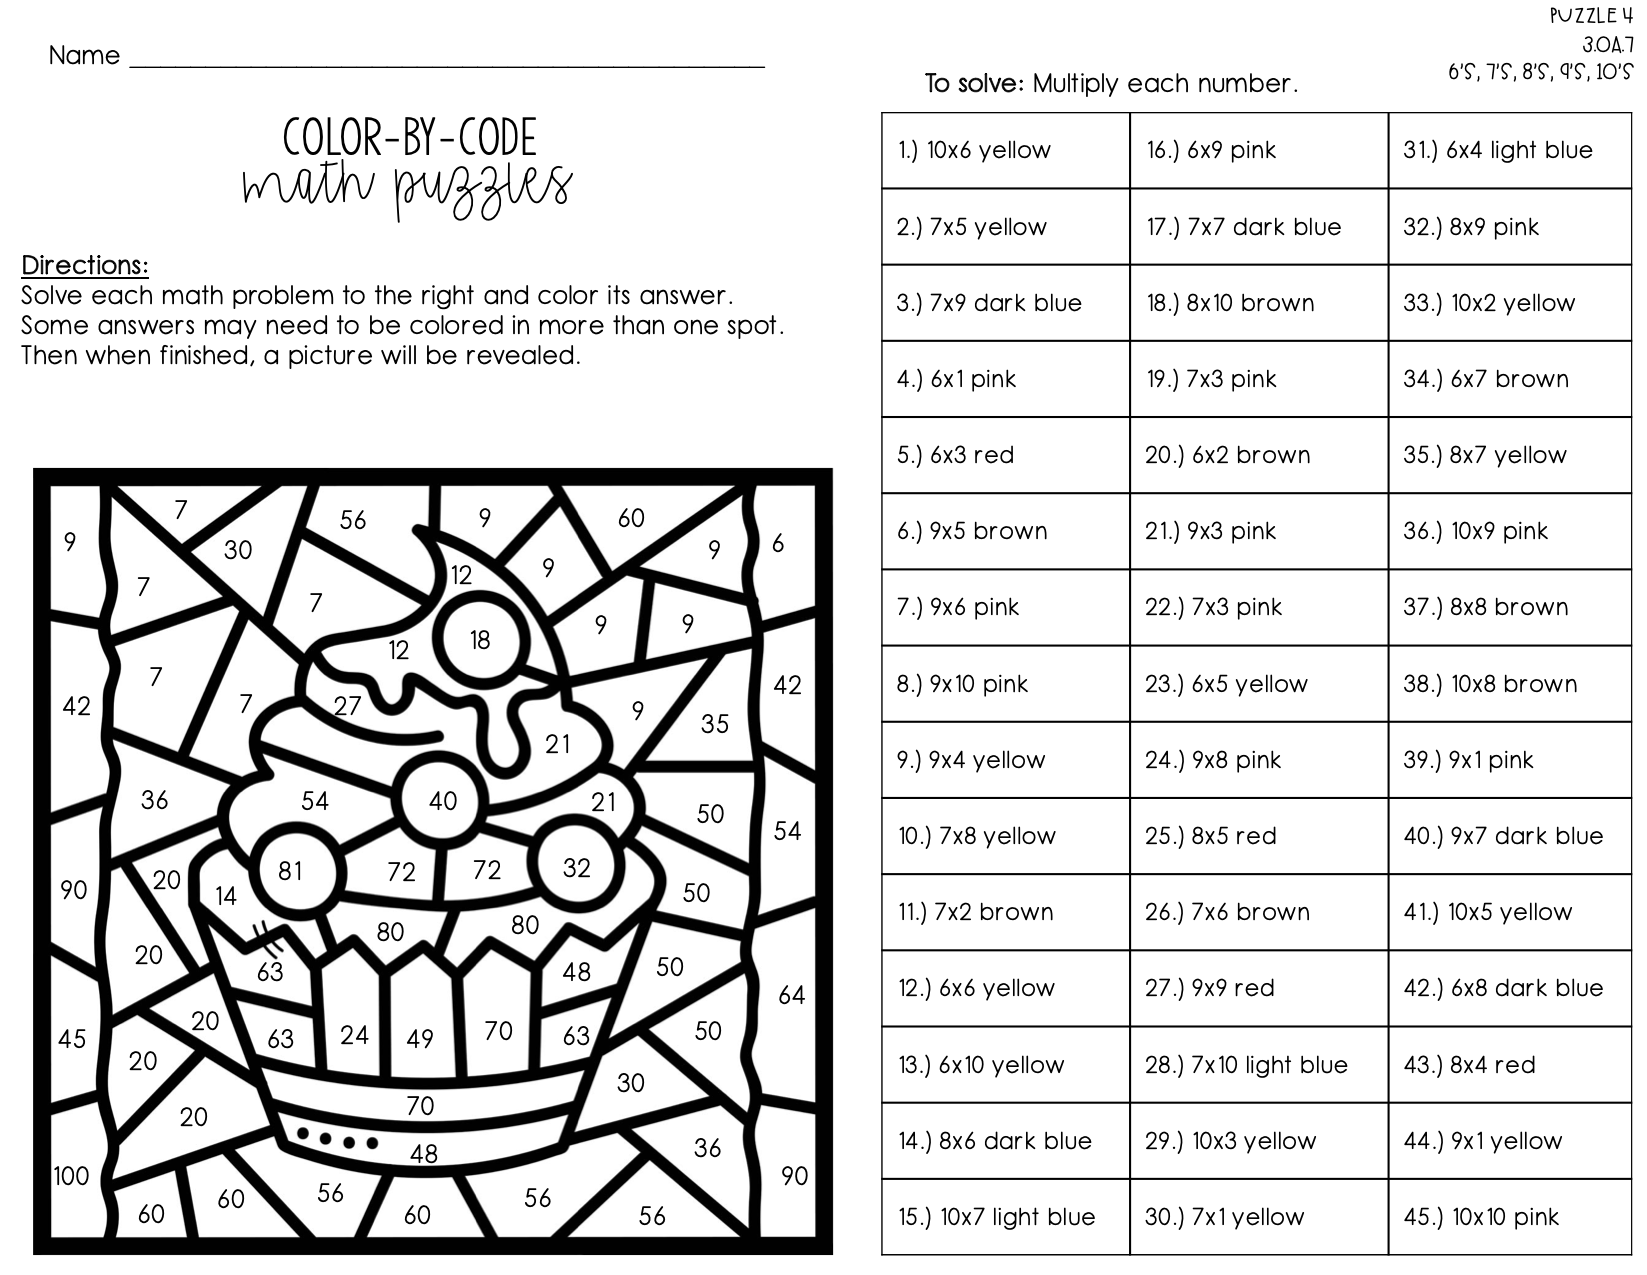 Multiplication Facts Color By Number Color By Code Multiplication Facts Multiplication Fun Math Activities [ 1275 x 1647 Pixel ]